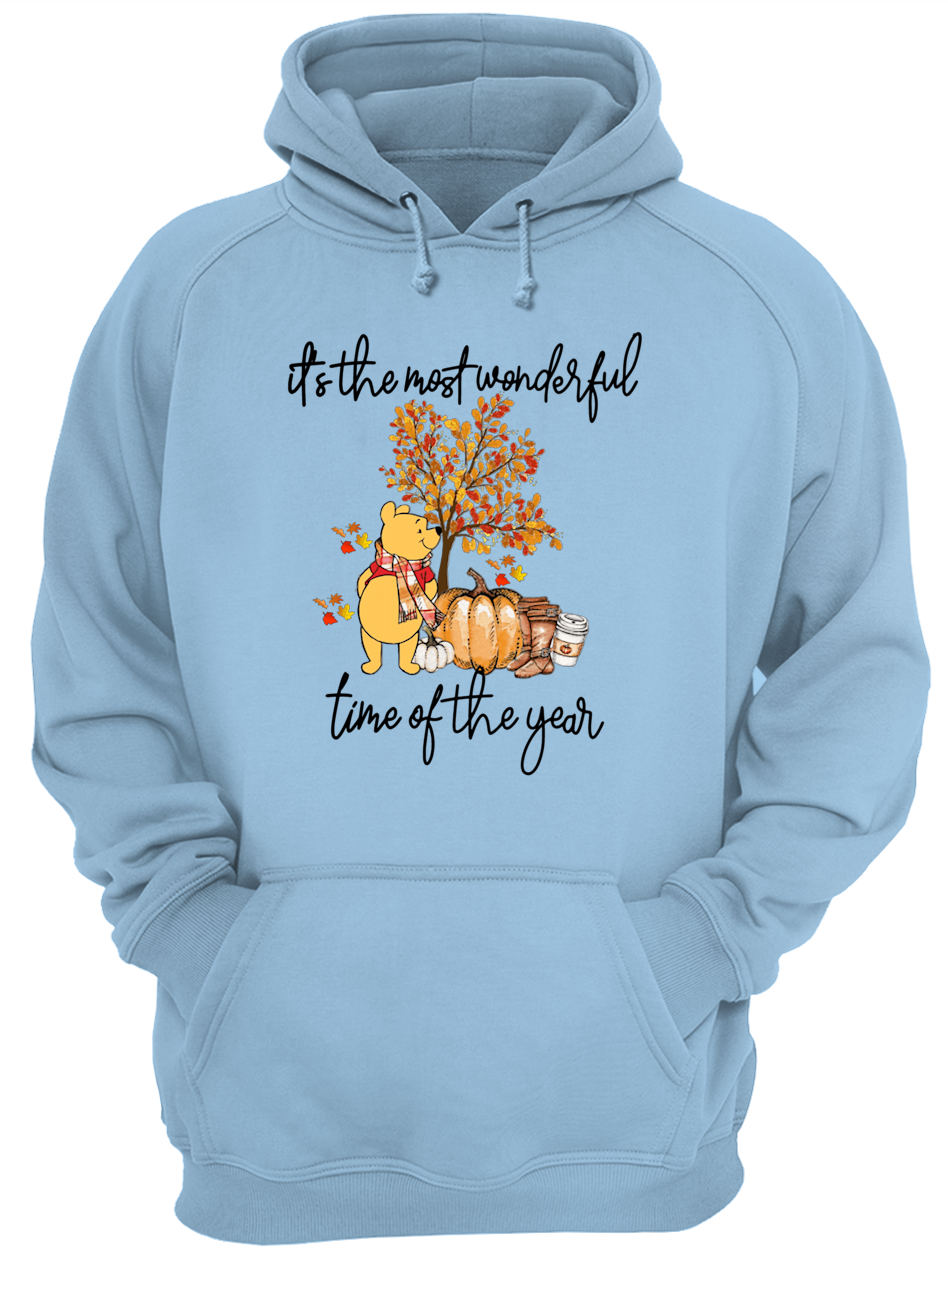 Pooh pumpkin it's the most wonderful time of the year hoodie